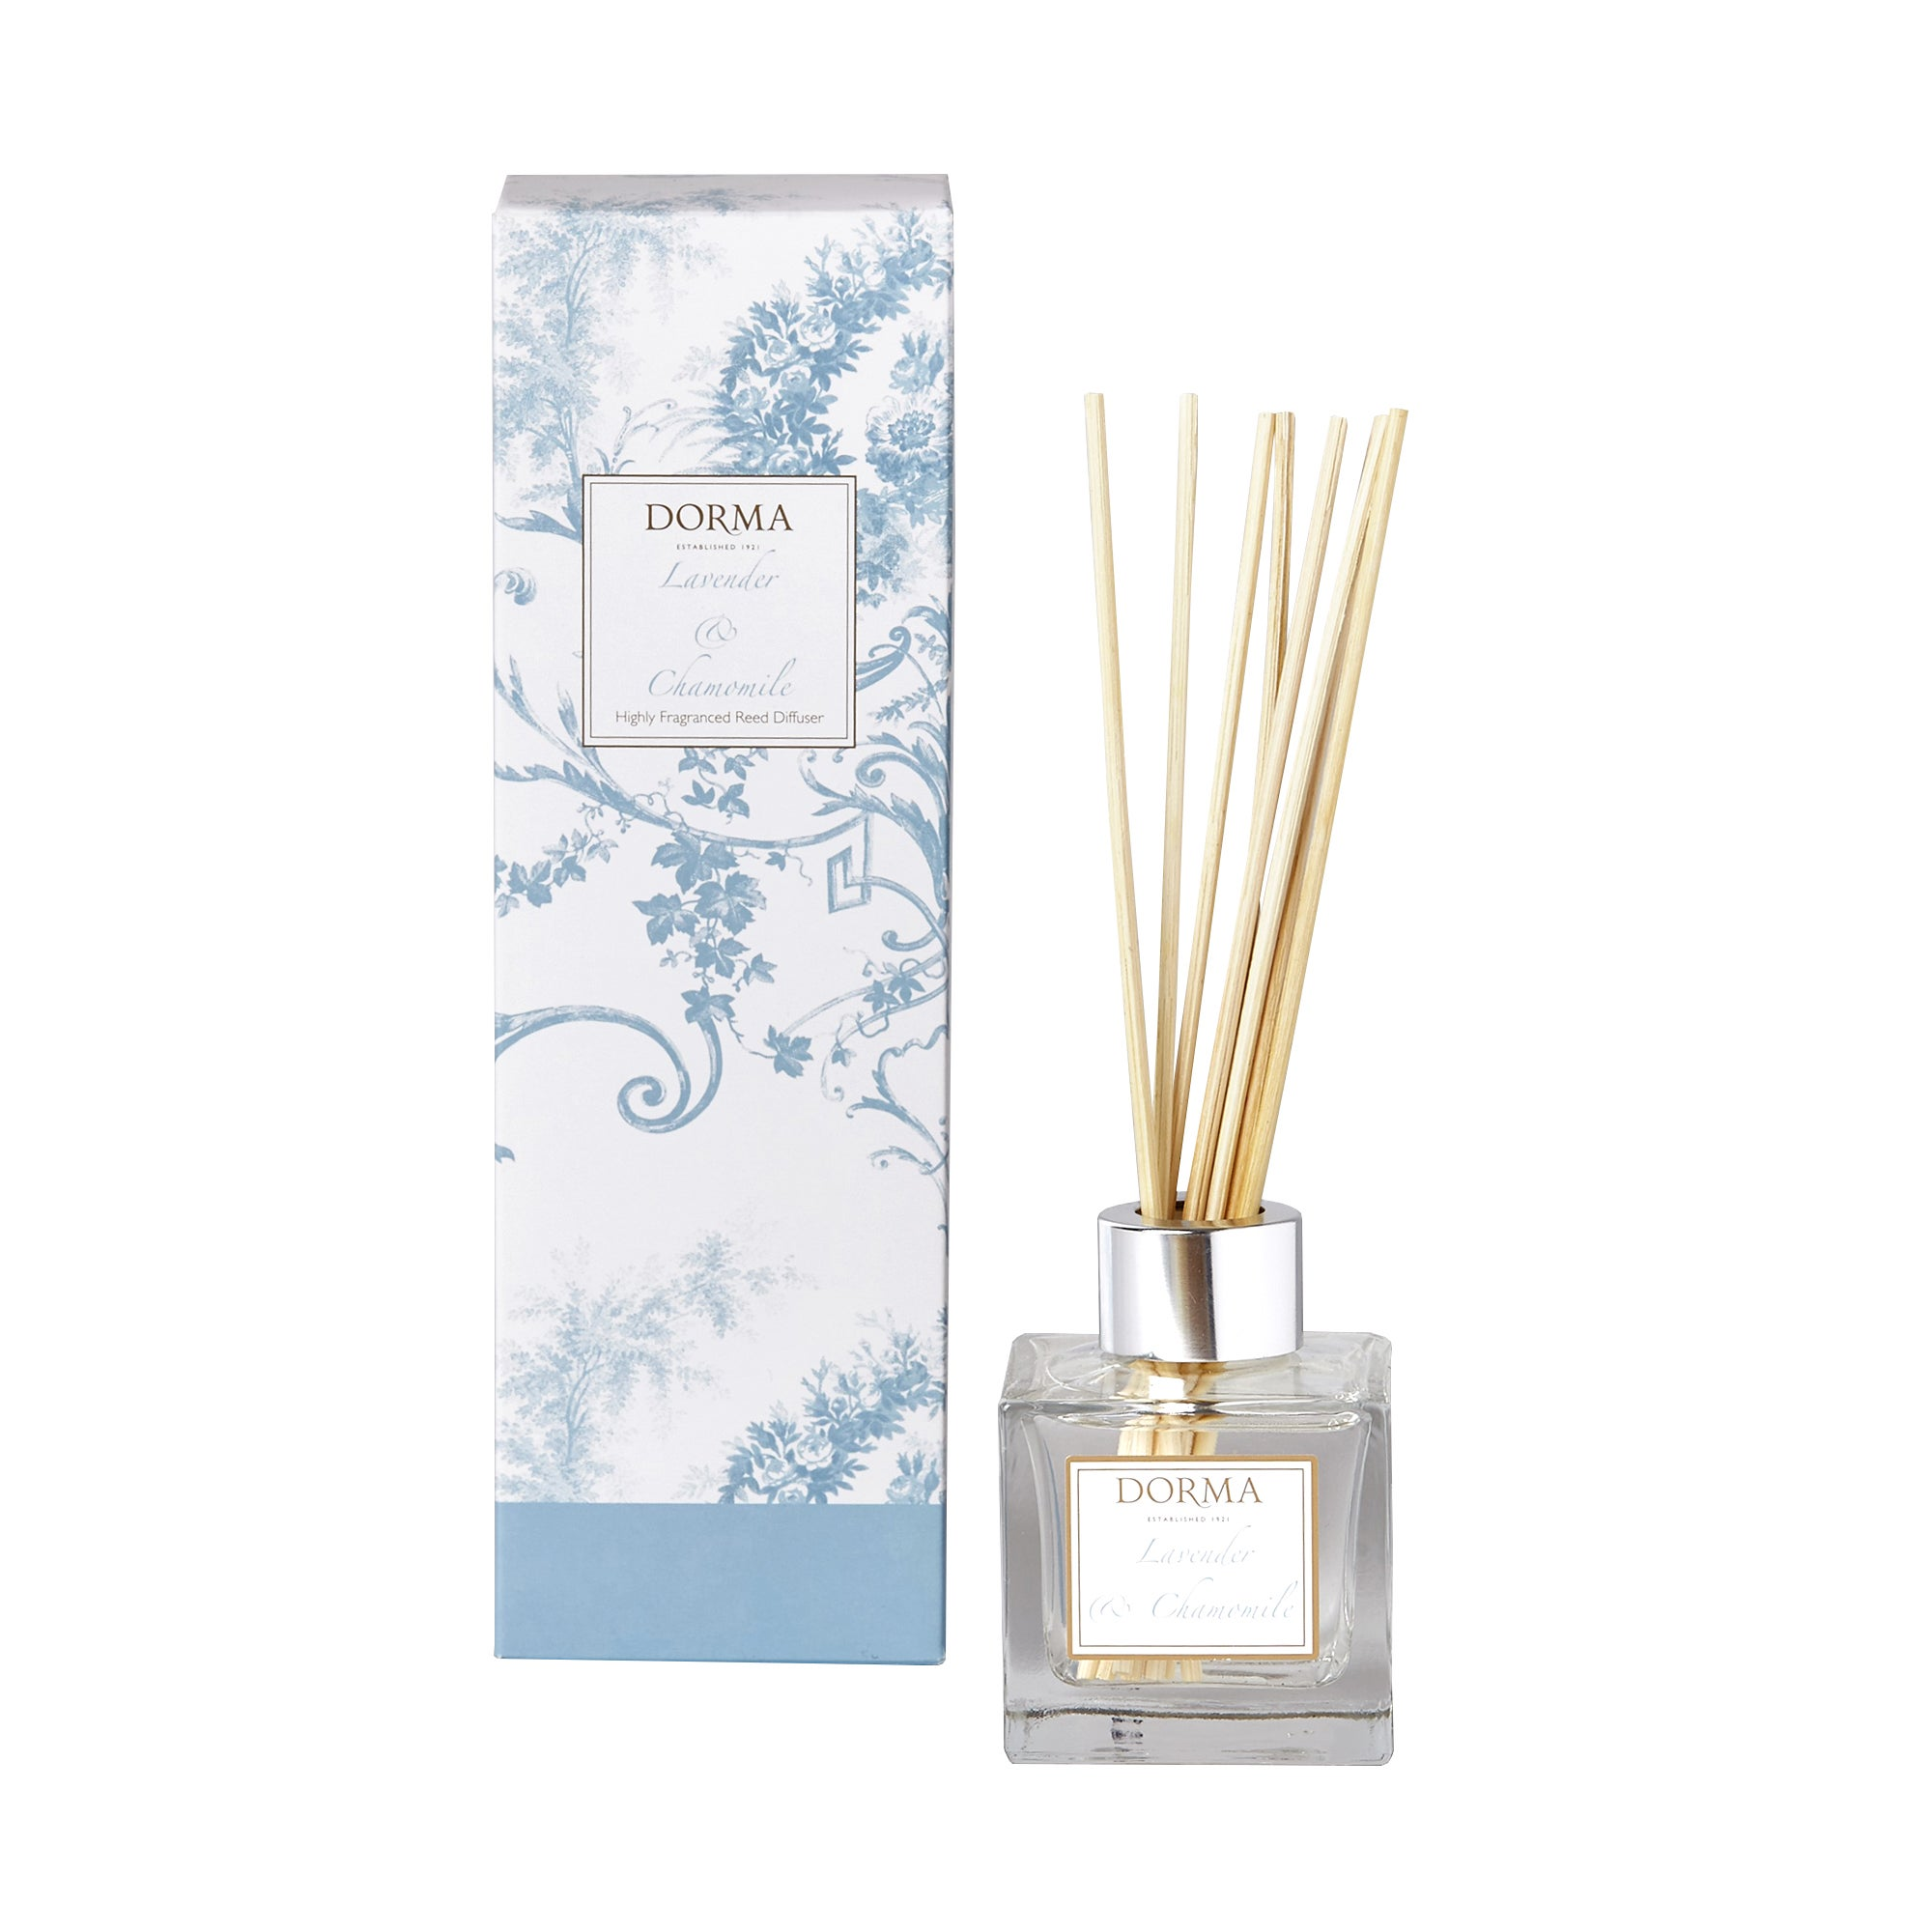 Dorma Lavender and Chamomile 100ml Reed Diffuser